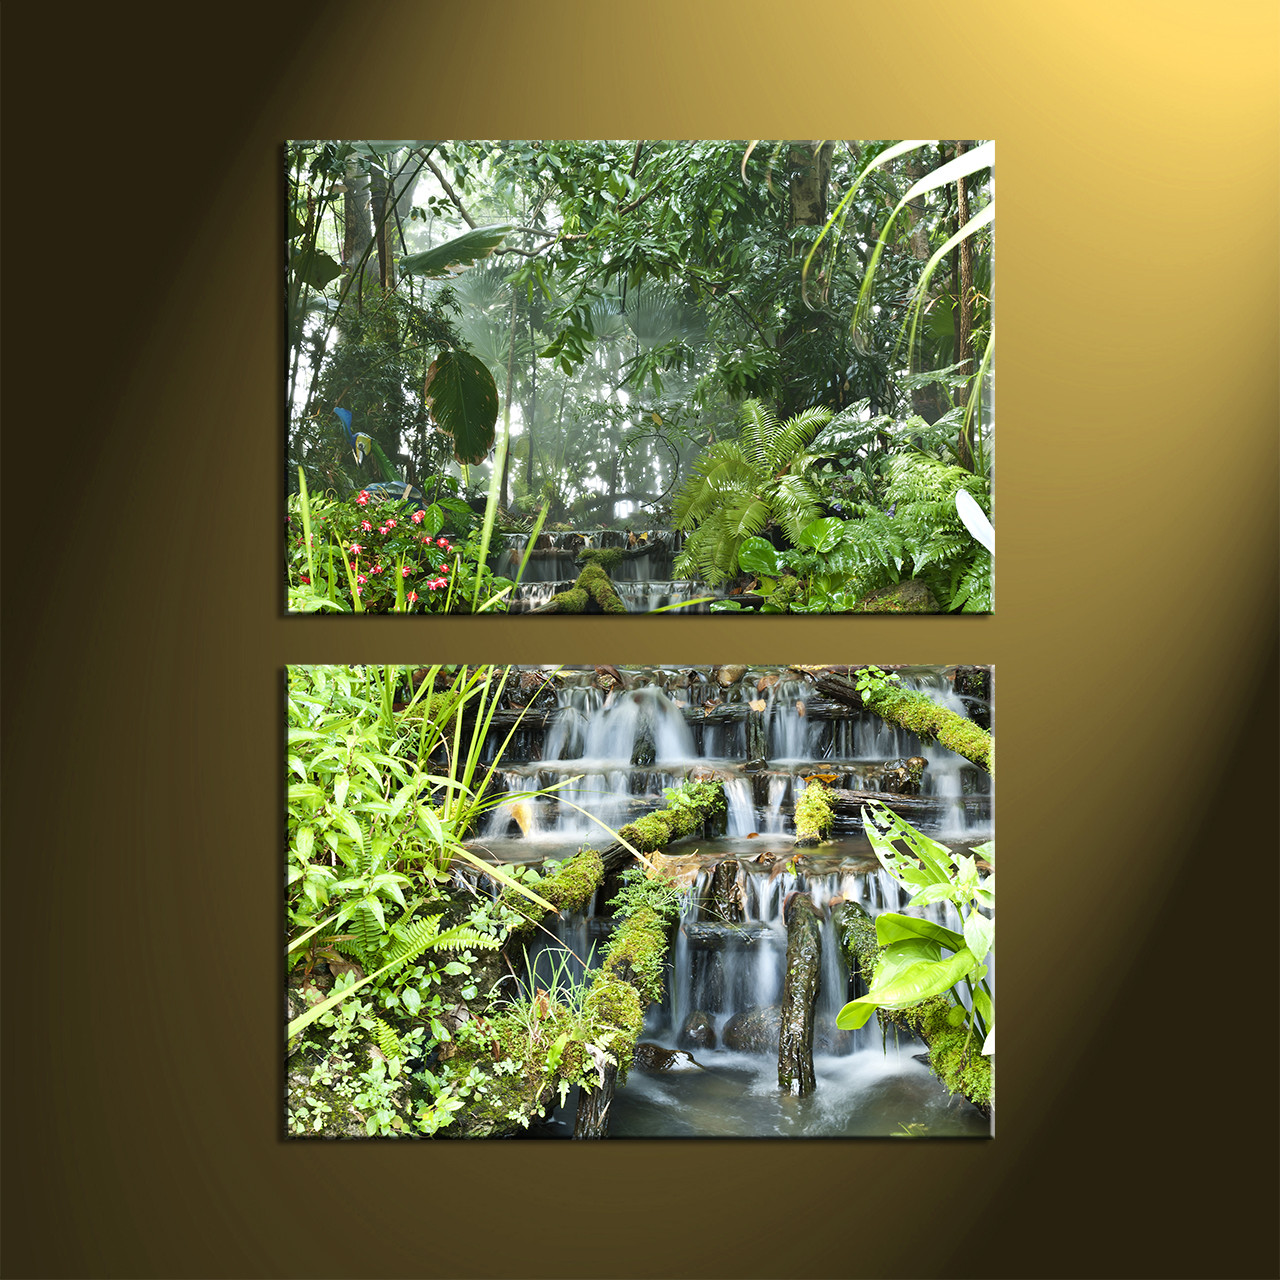 Forest Wall Art 2 piece green canvas scenery forest wall art